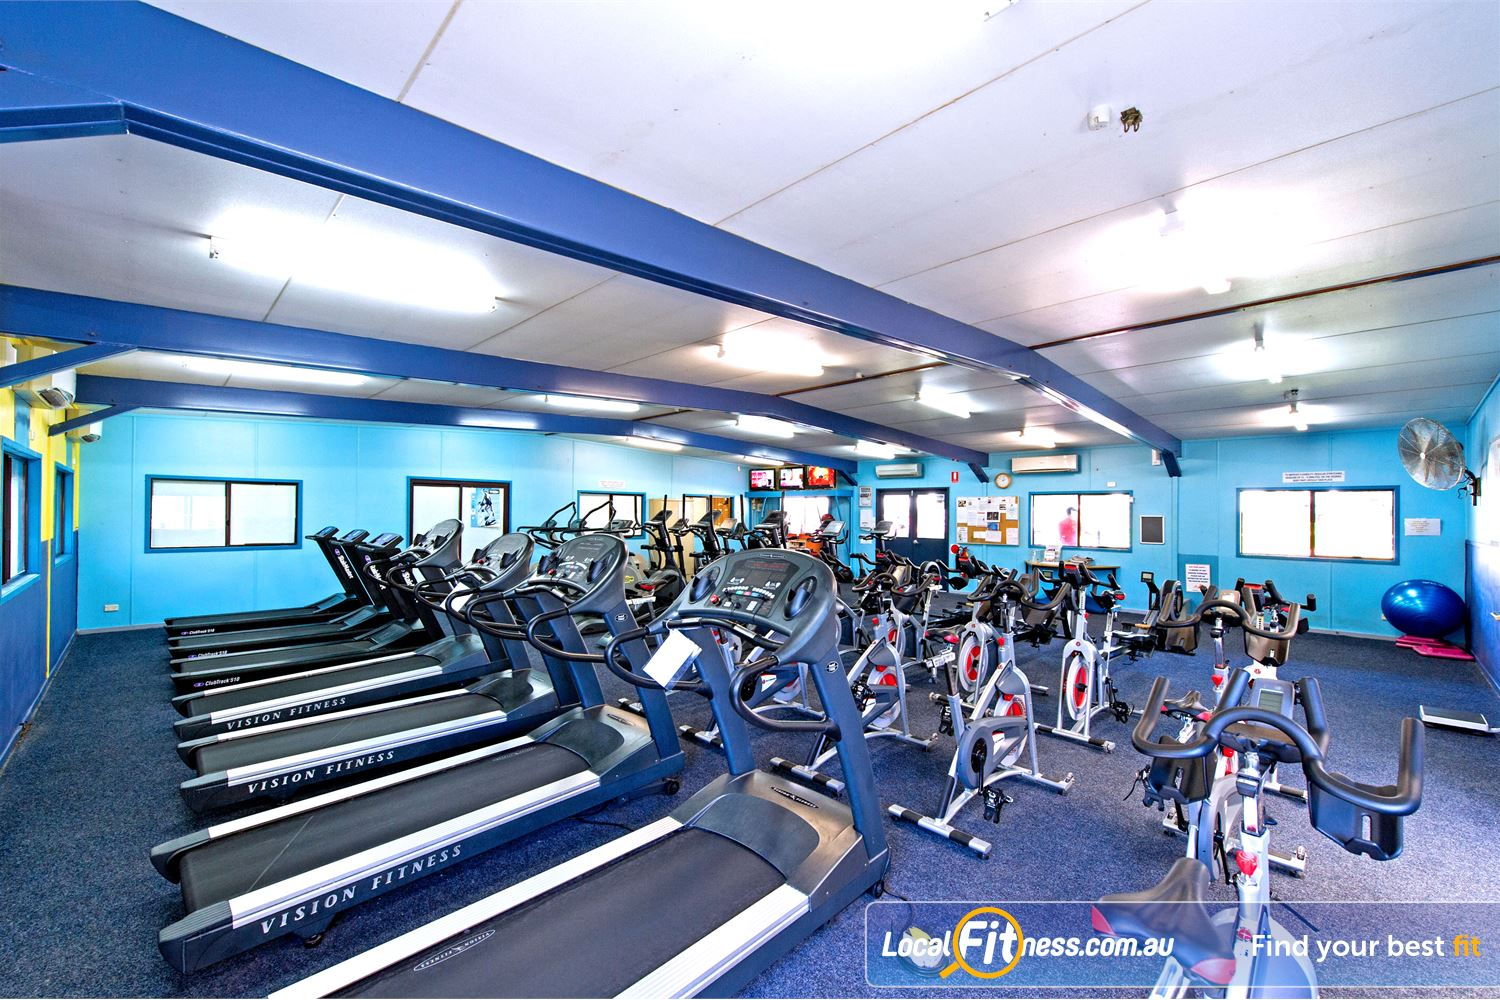 Waves Fitness and Aquatic Centre Near Castle Hill The state of the art cardio area.